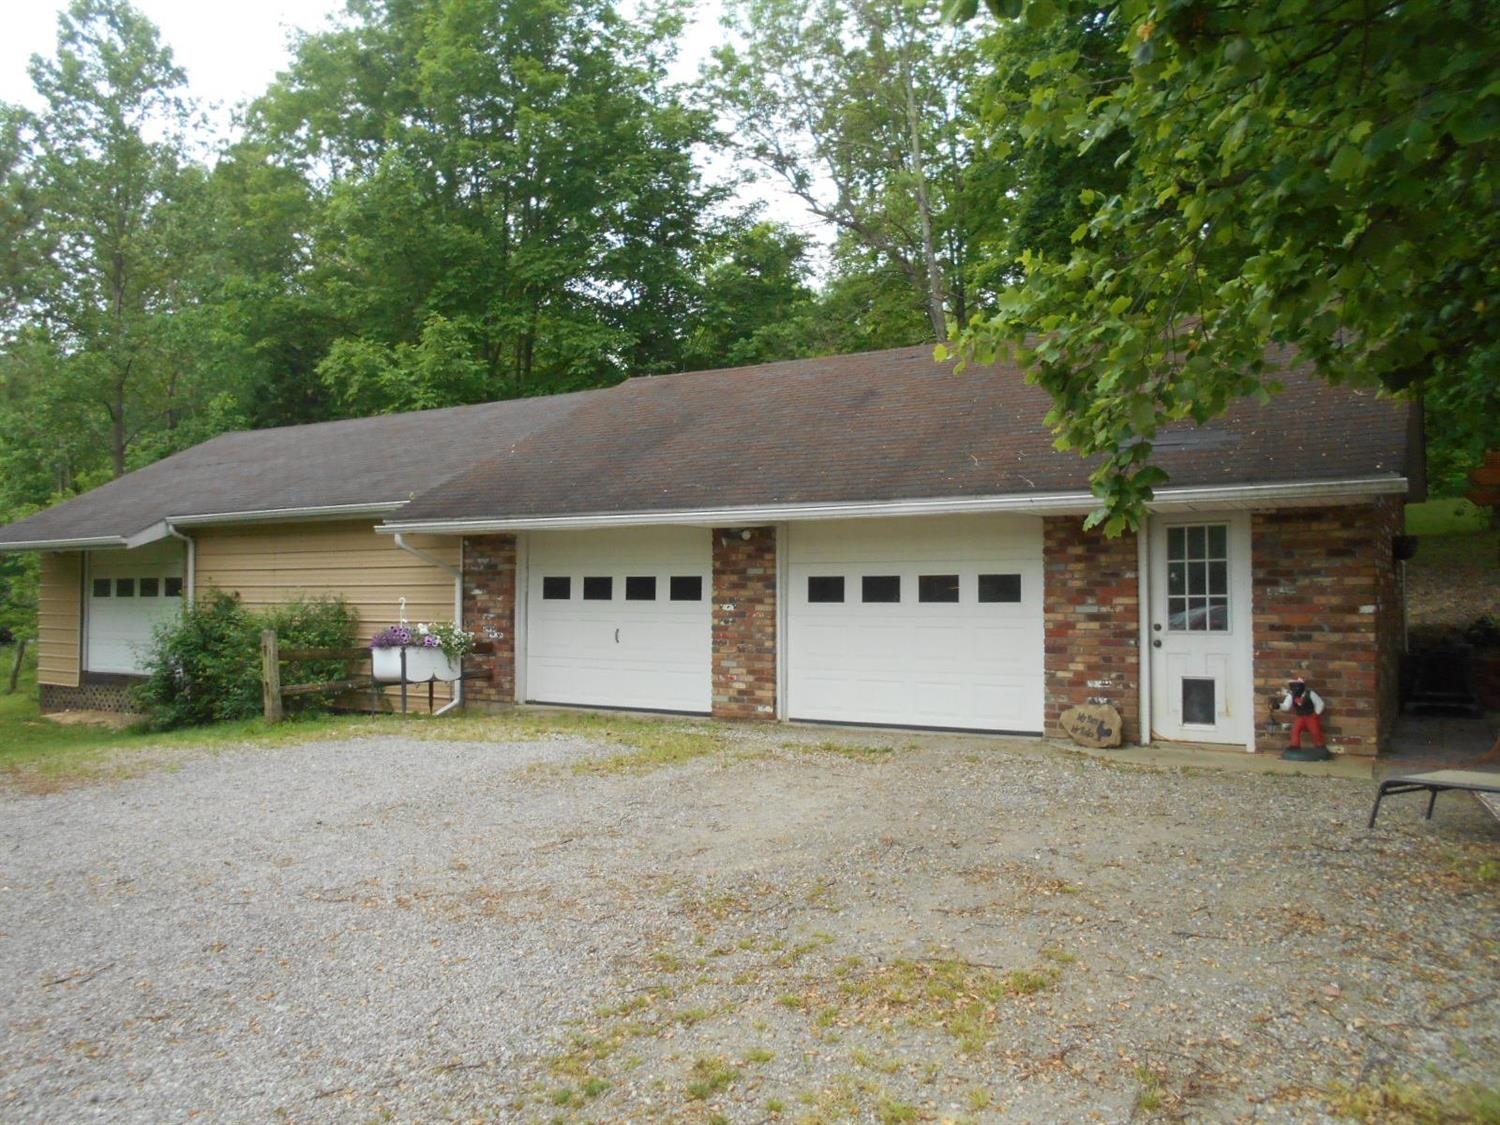 Photo 3 for 4783 Bell Hollow Rd Pike County, OH 45133